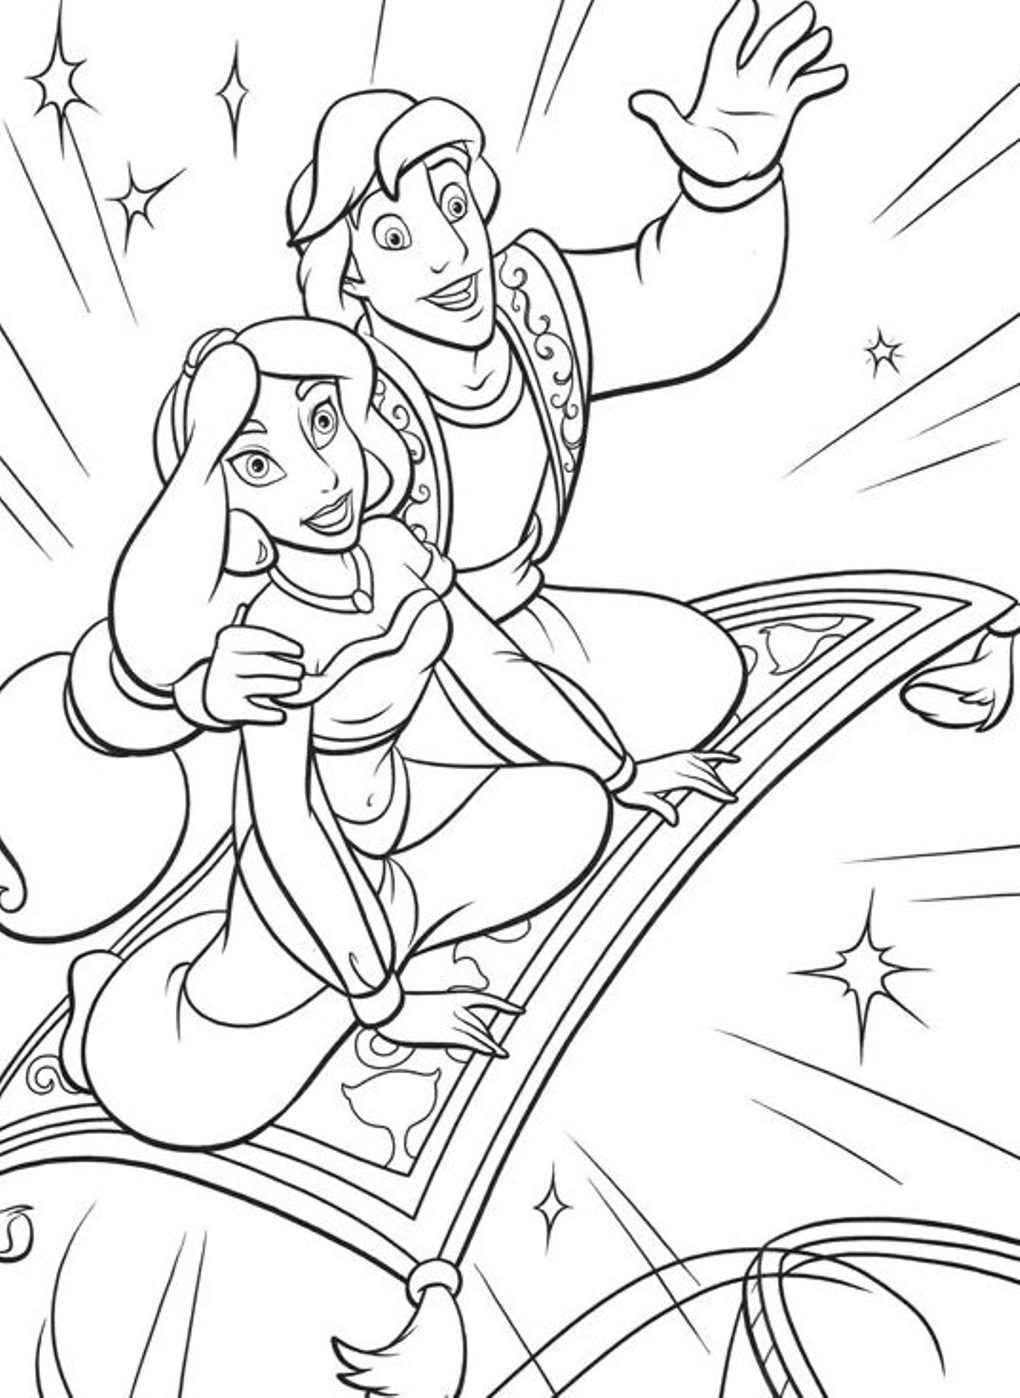 jasmine coloring pages to print - photo#31